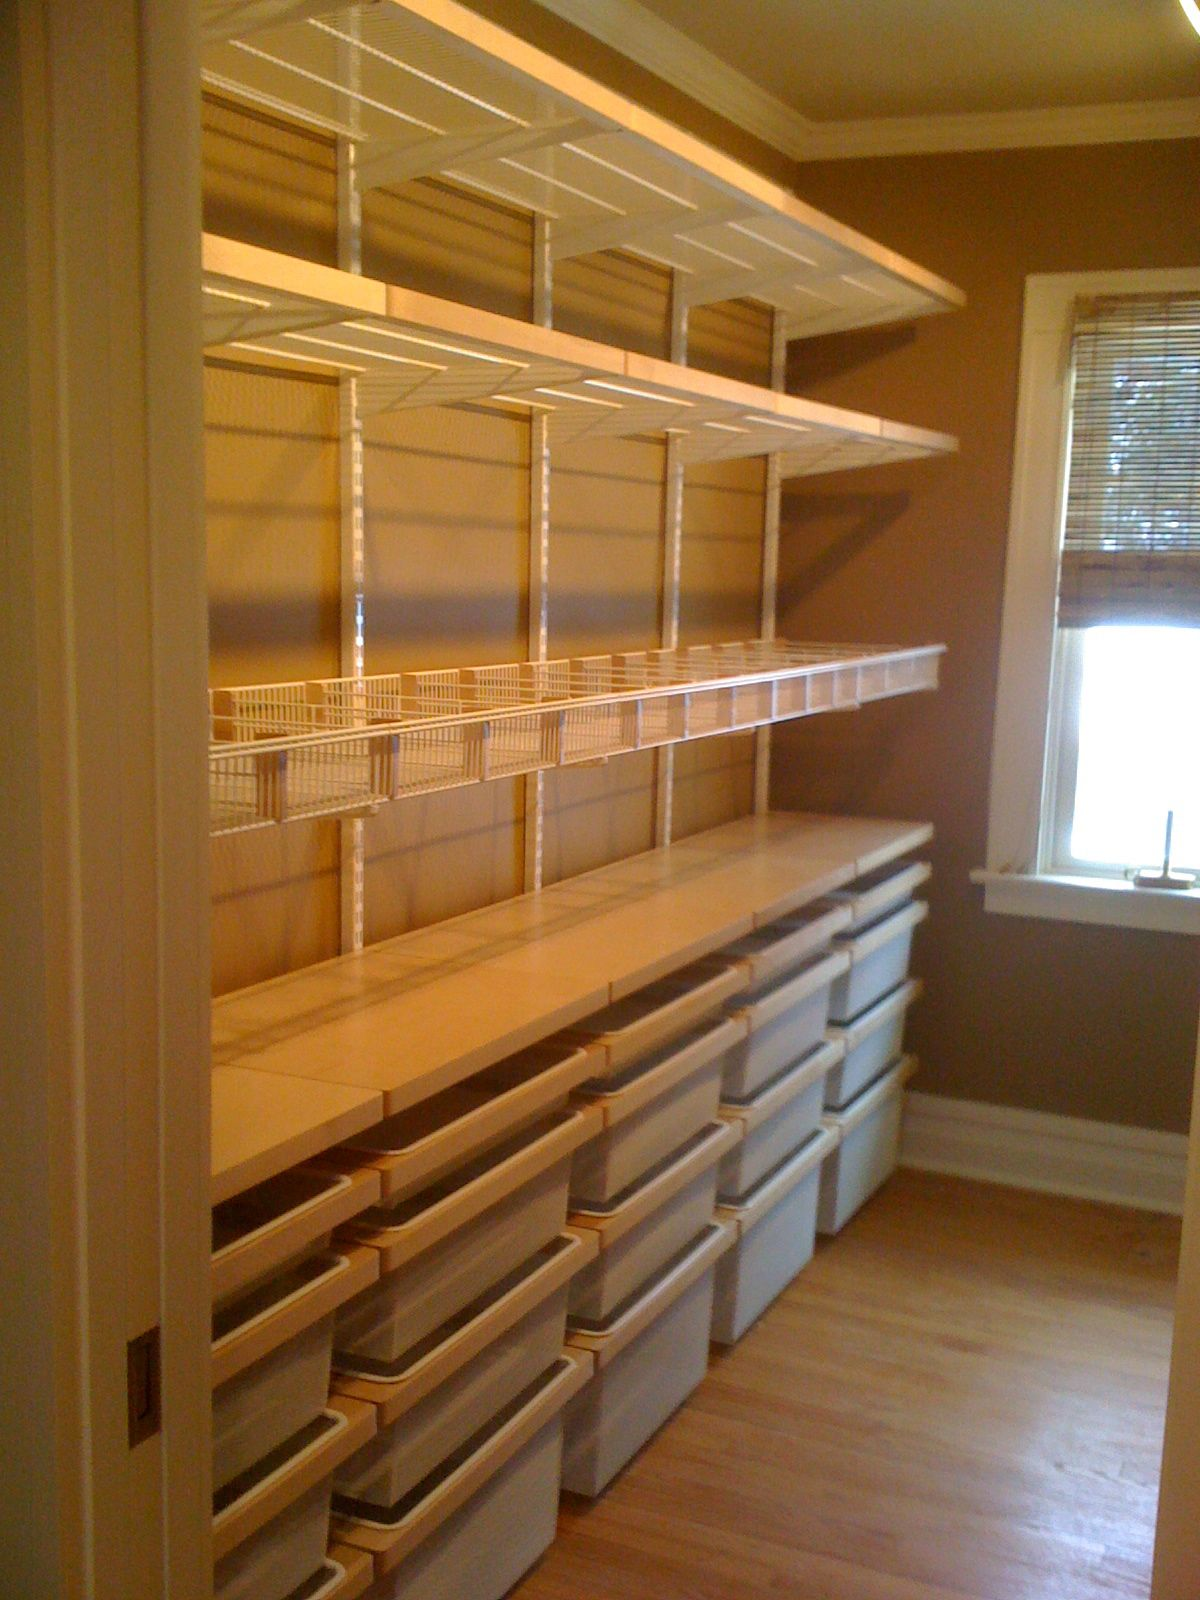 D Ikea Vs Elfa Closet System Reviews Elfa Closet Systems